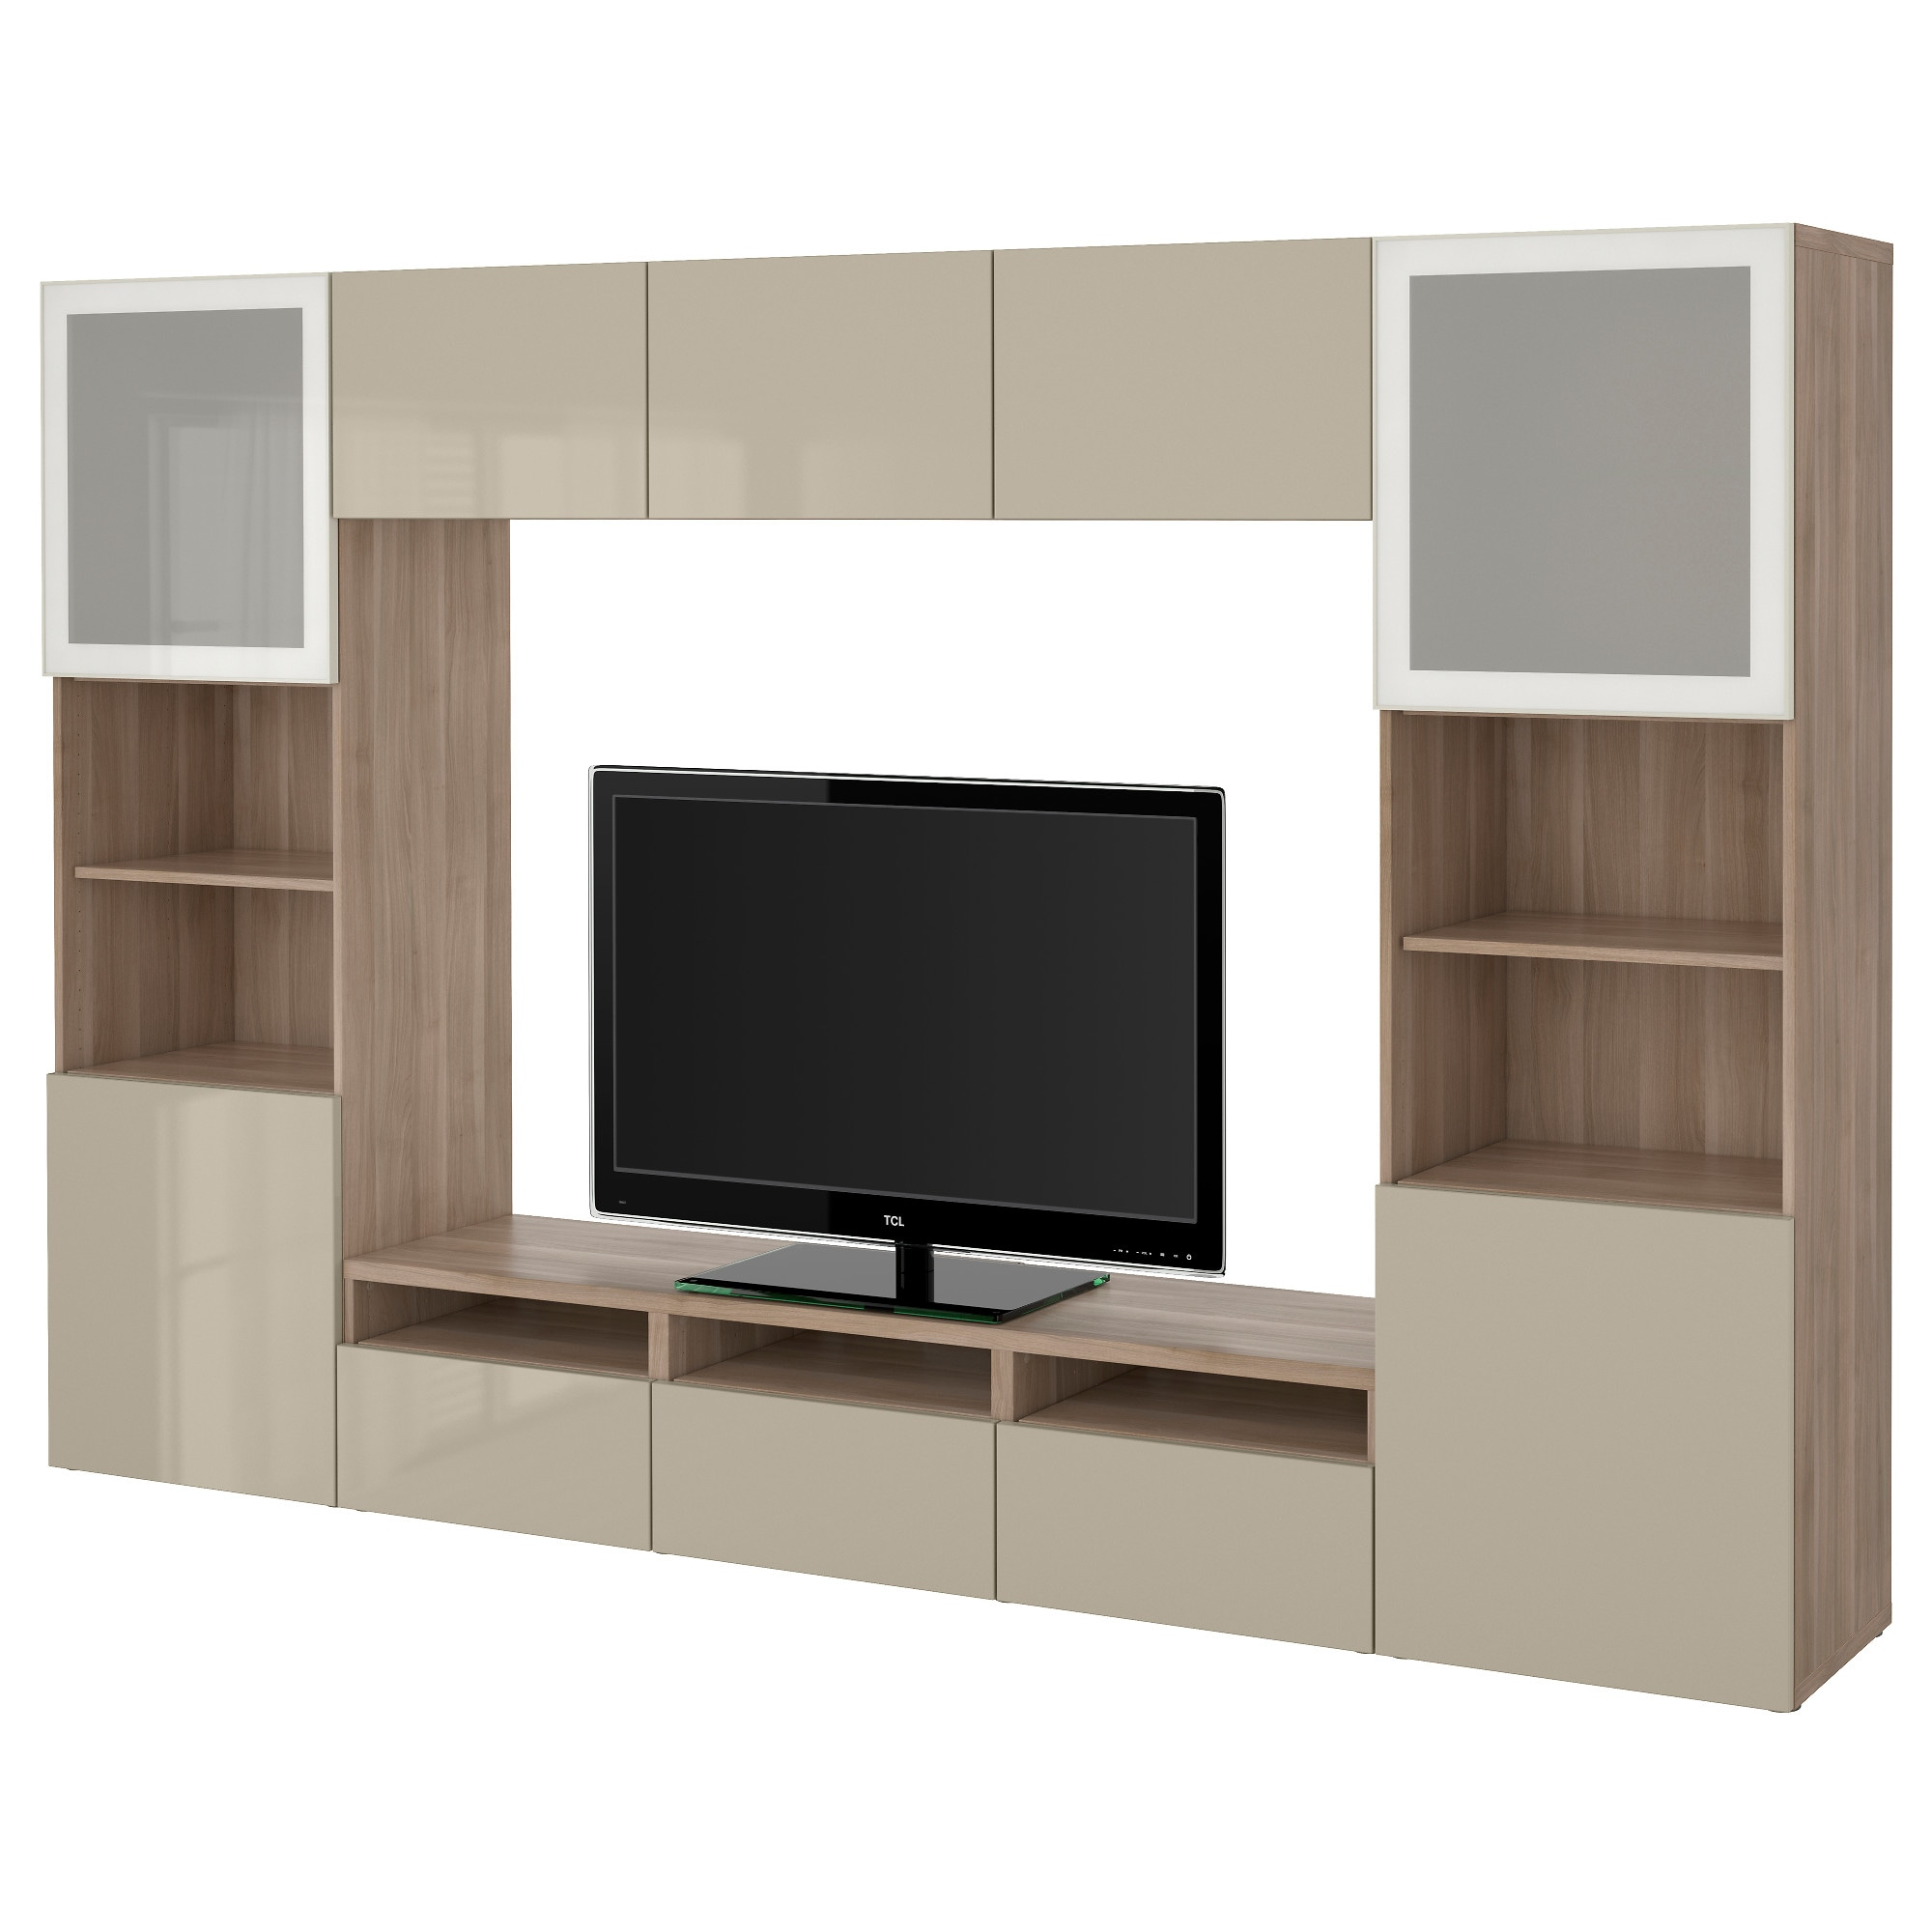 ikea besta best livingroom storage system ikea. Black Bedroom Furniture Sets. Home Design Ideas